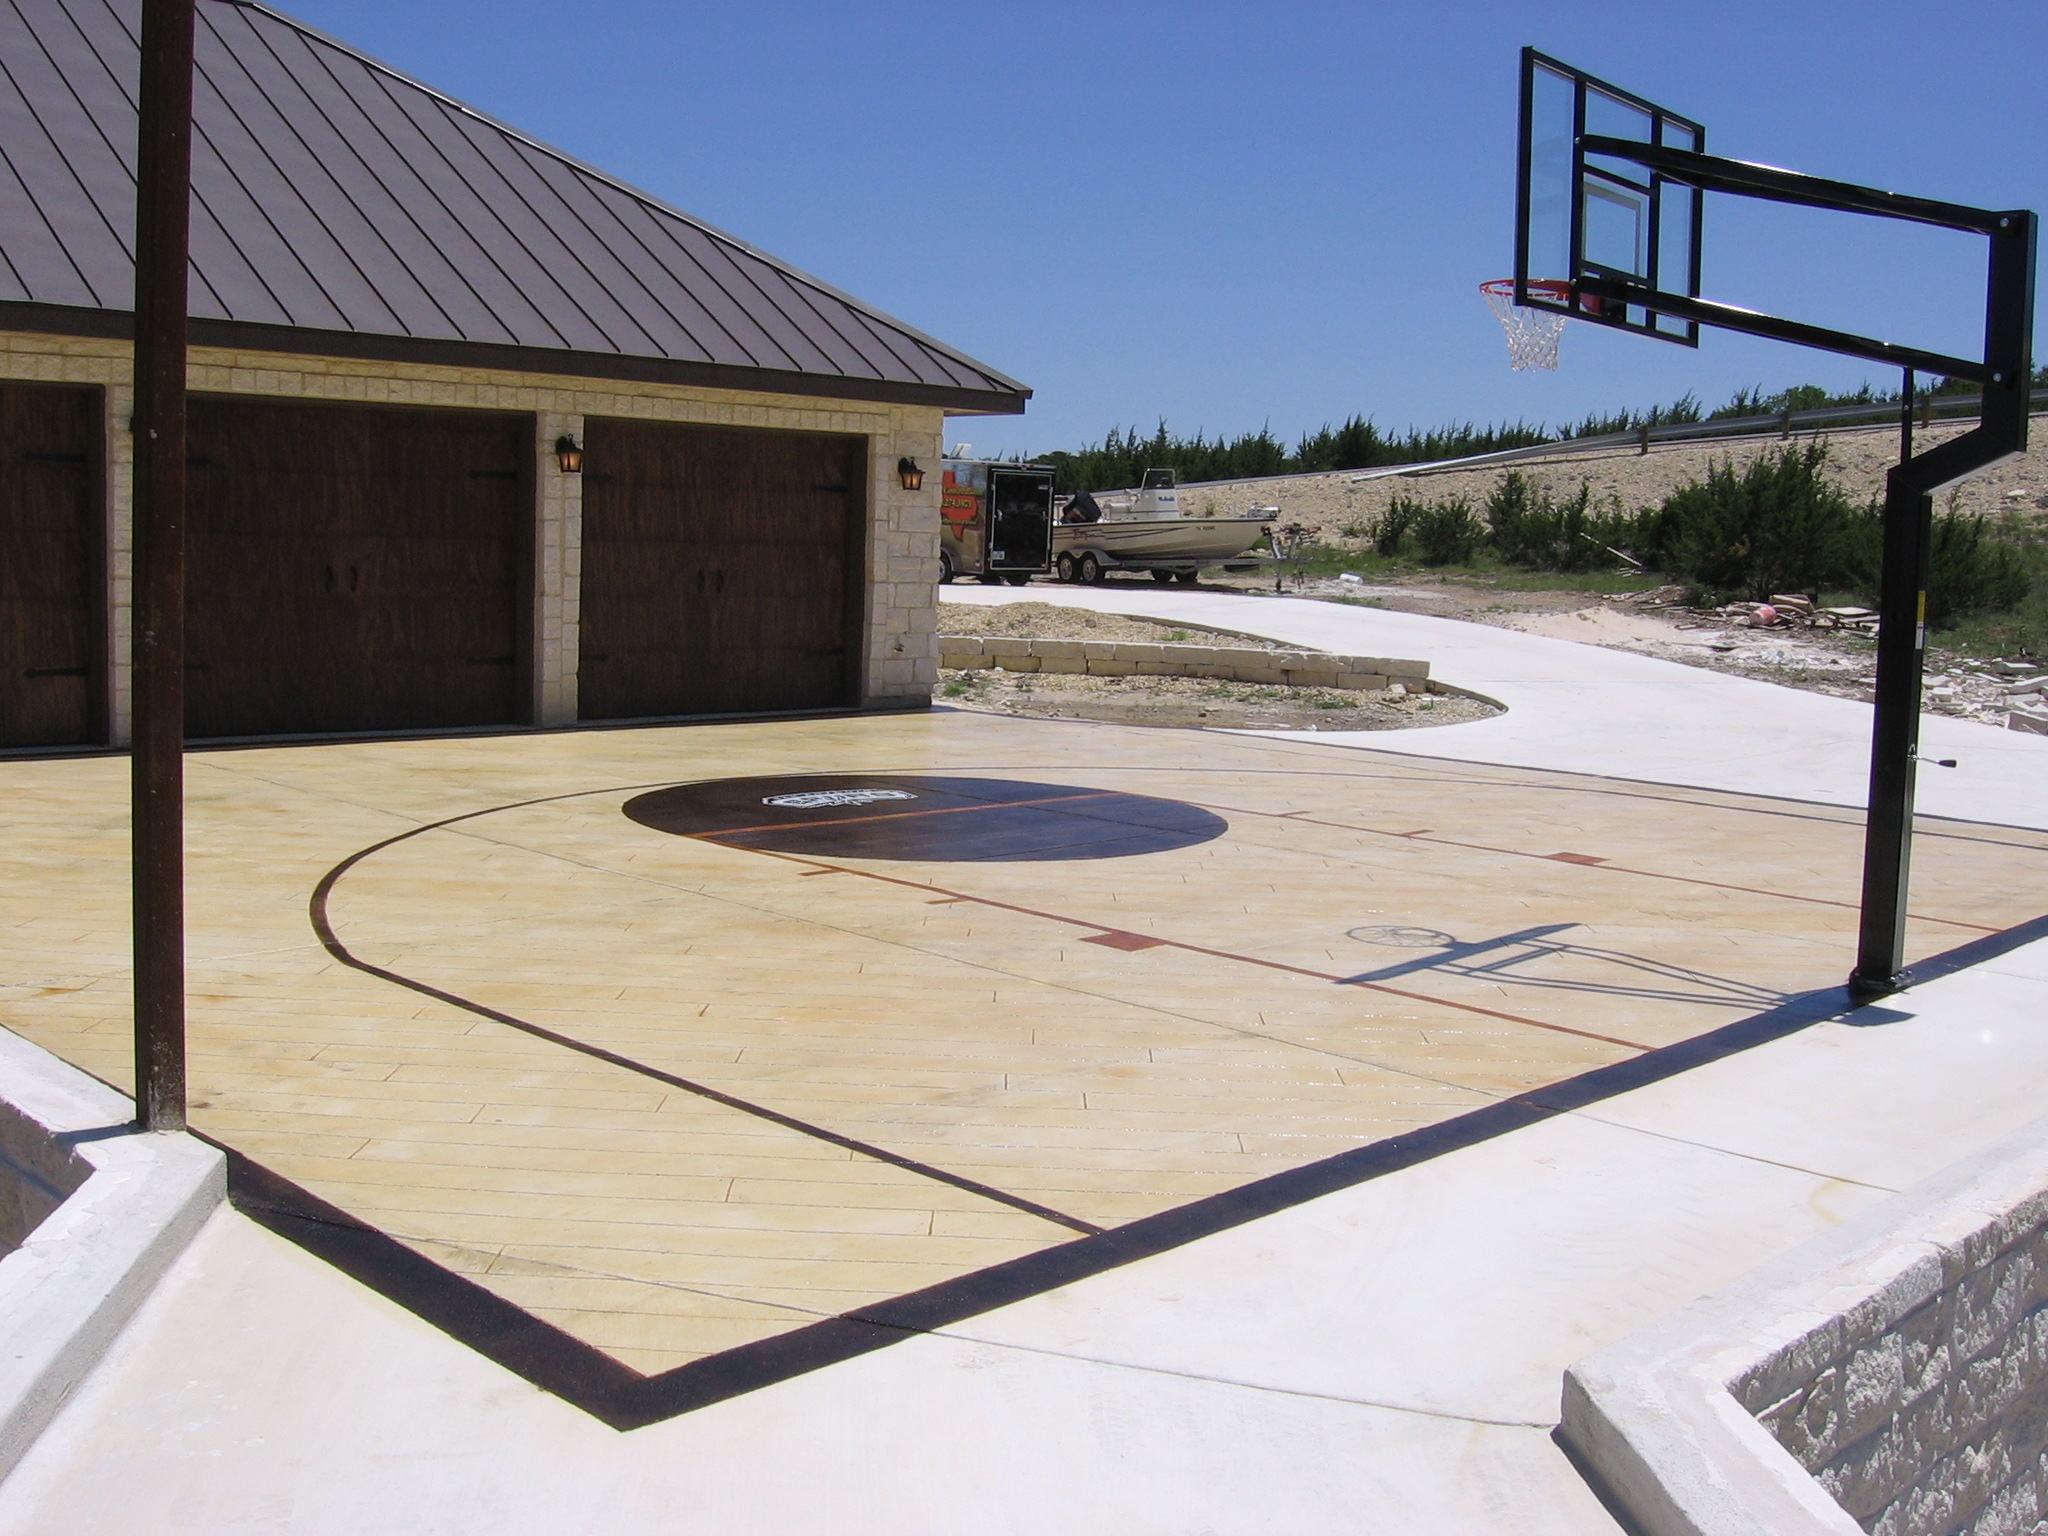 Sport Courts Basketball Courts And Tennis Courts